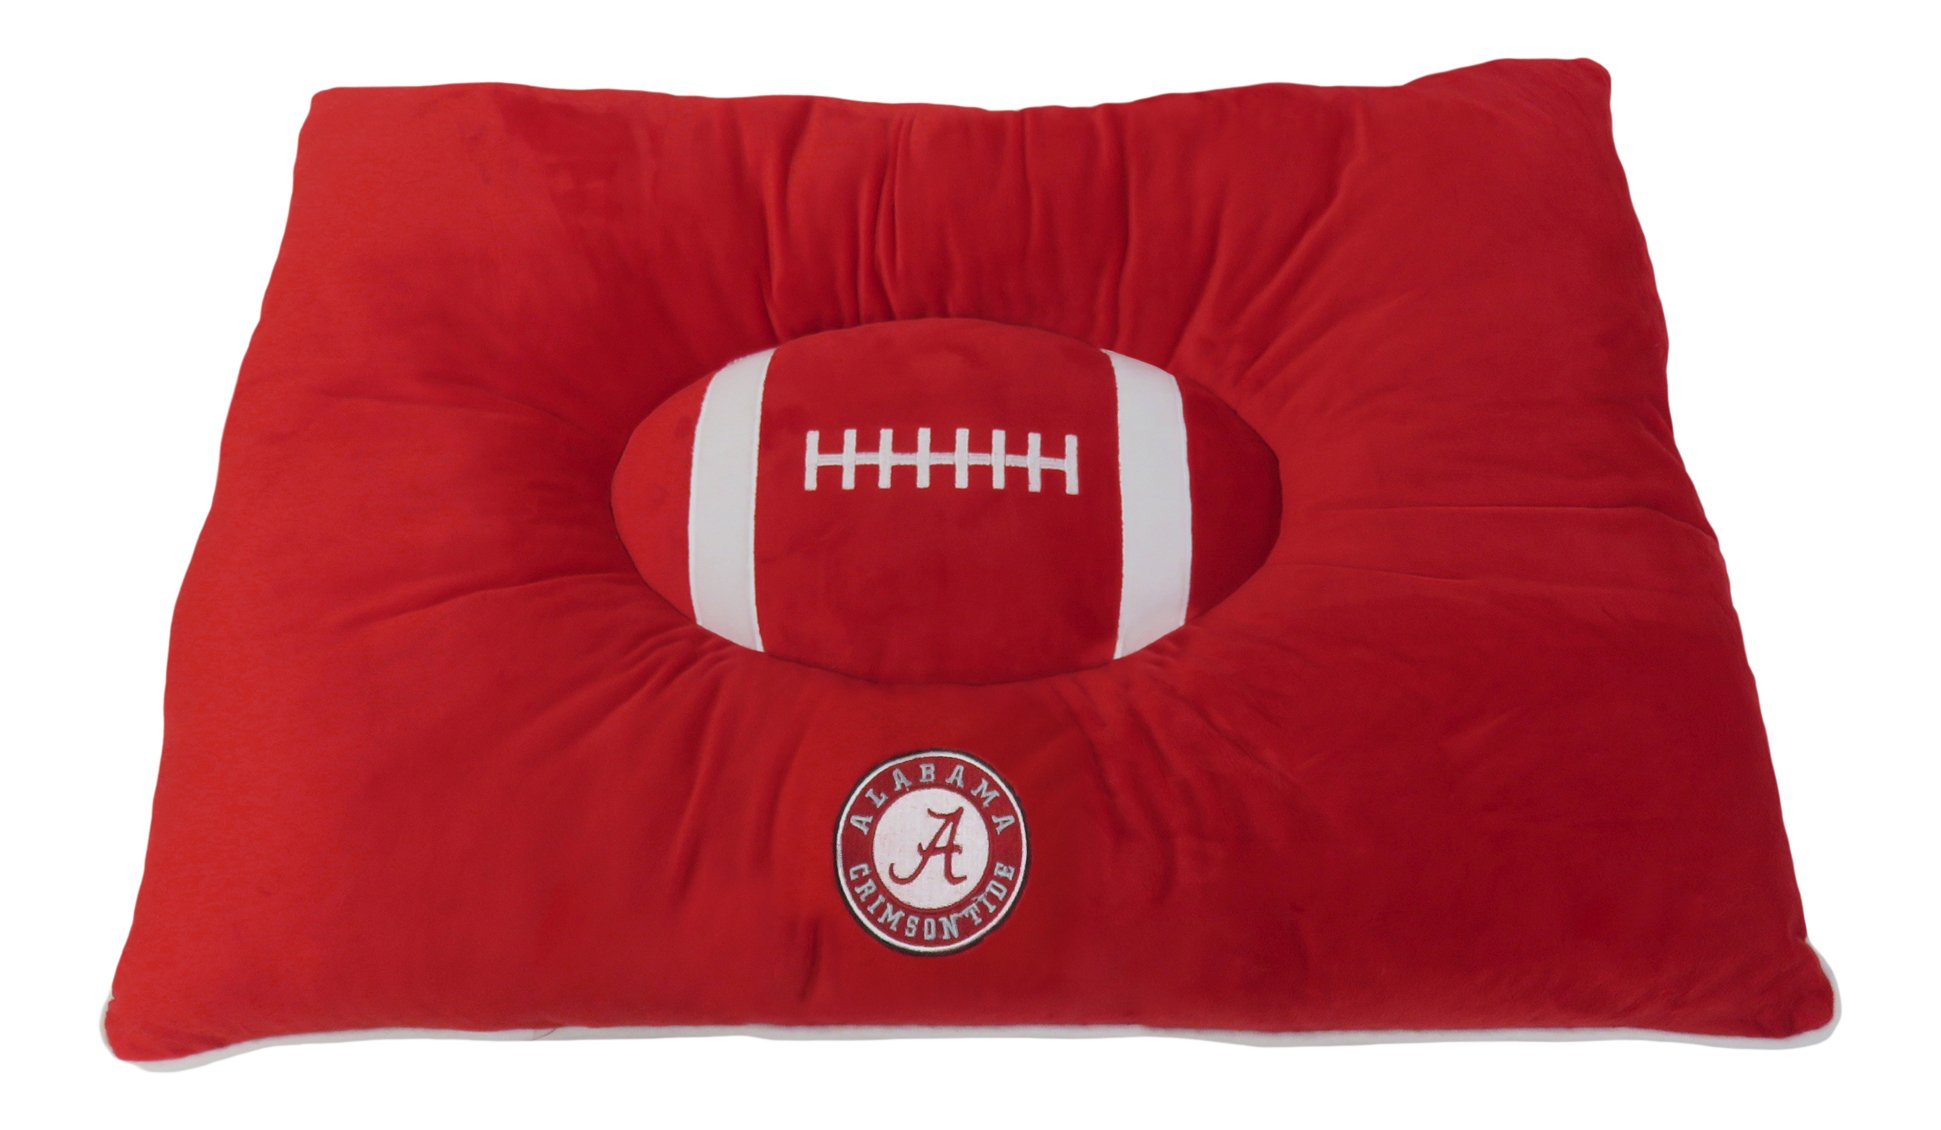 "College PET BED. - ""Soft & Cozy"" Plush Pet/Dog Pillow Bed. - Football Pet Bed. - Football Dog Bed. - Premium Pet Pillow Bed. - Premium Dog Bed. - 23 Teams Available! - Pet Mattress. - Dog Mattress. - NCAA Pet Bed."